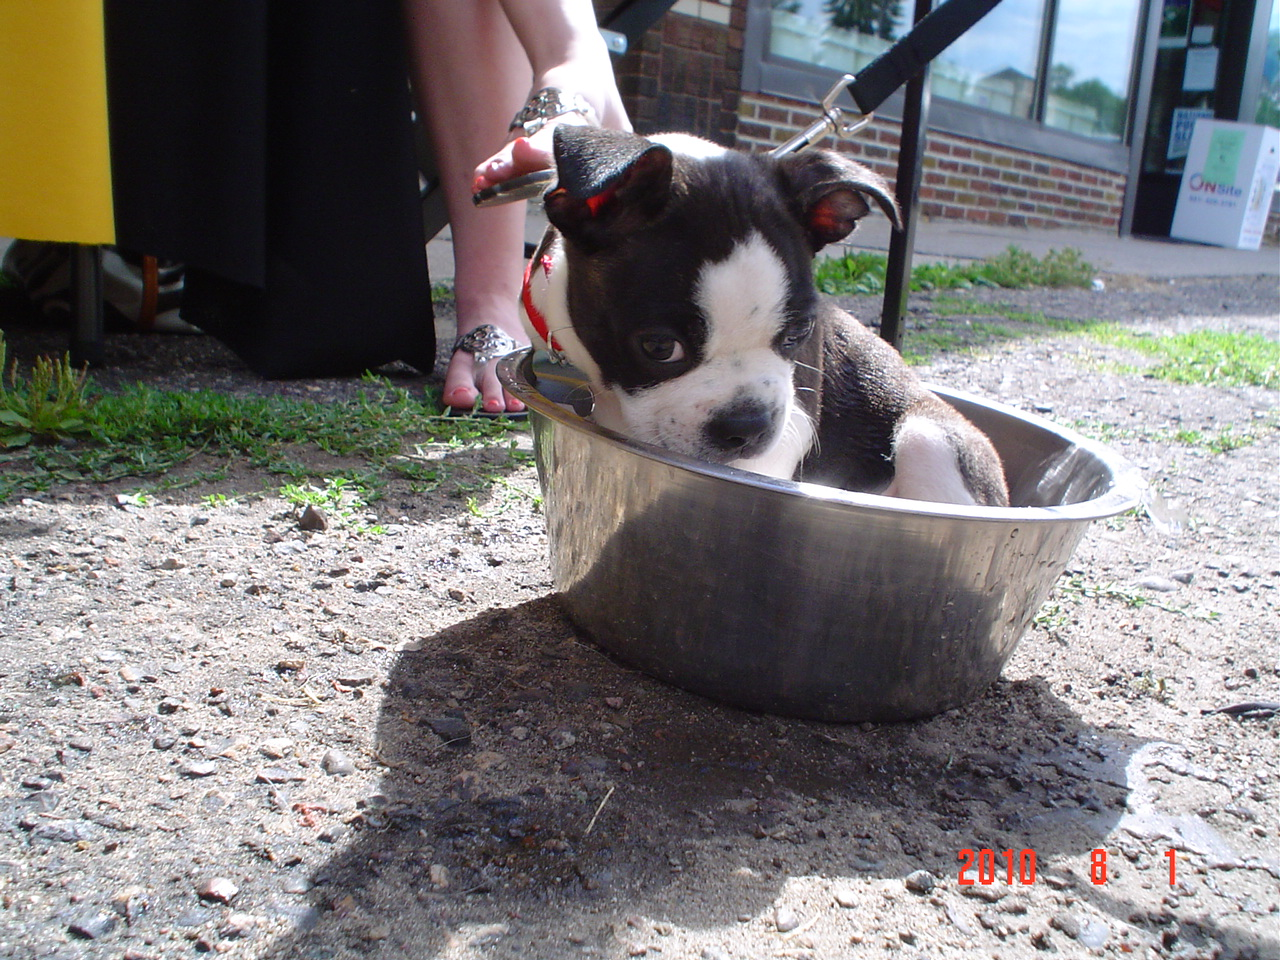 Boston Terrier Pup in a water dish